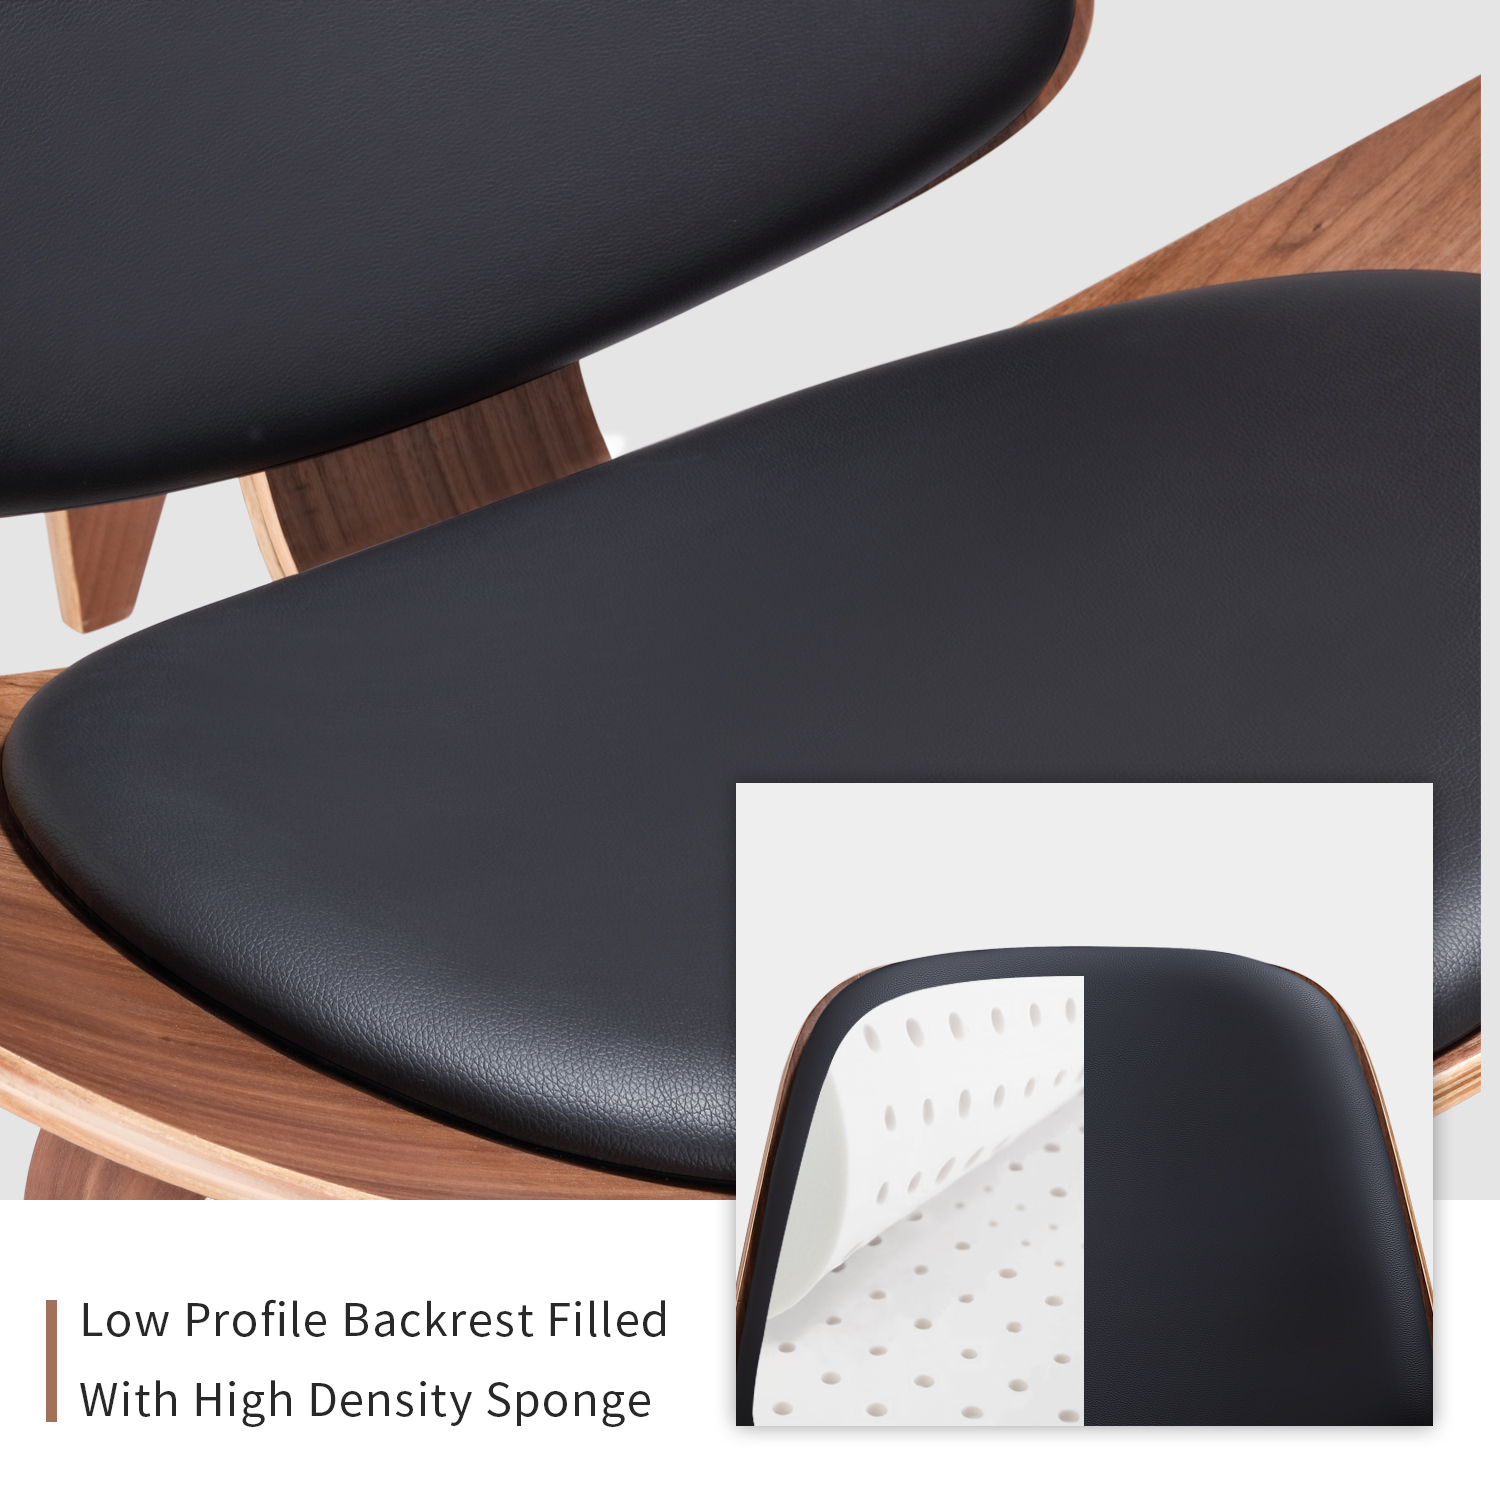 Furgle Mid Century Lounge Chair Replica Shell Chair Modern Tripod Plywood Lounge Chair 3 Wood Colors with Black Leather Chairs 5